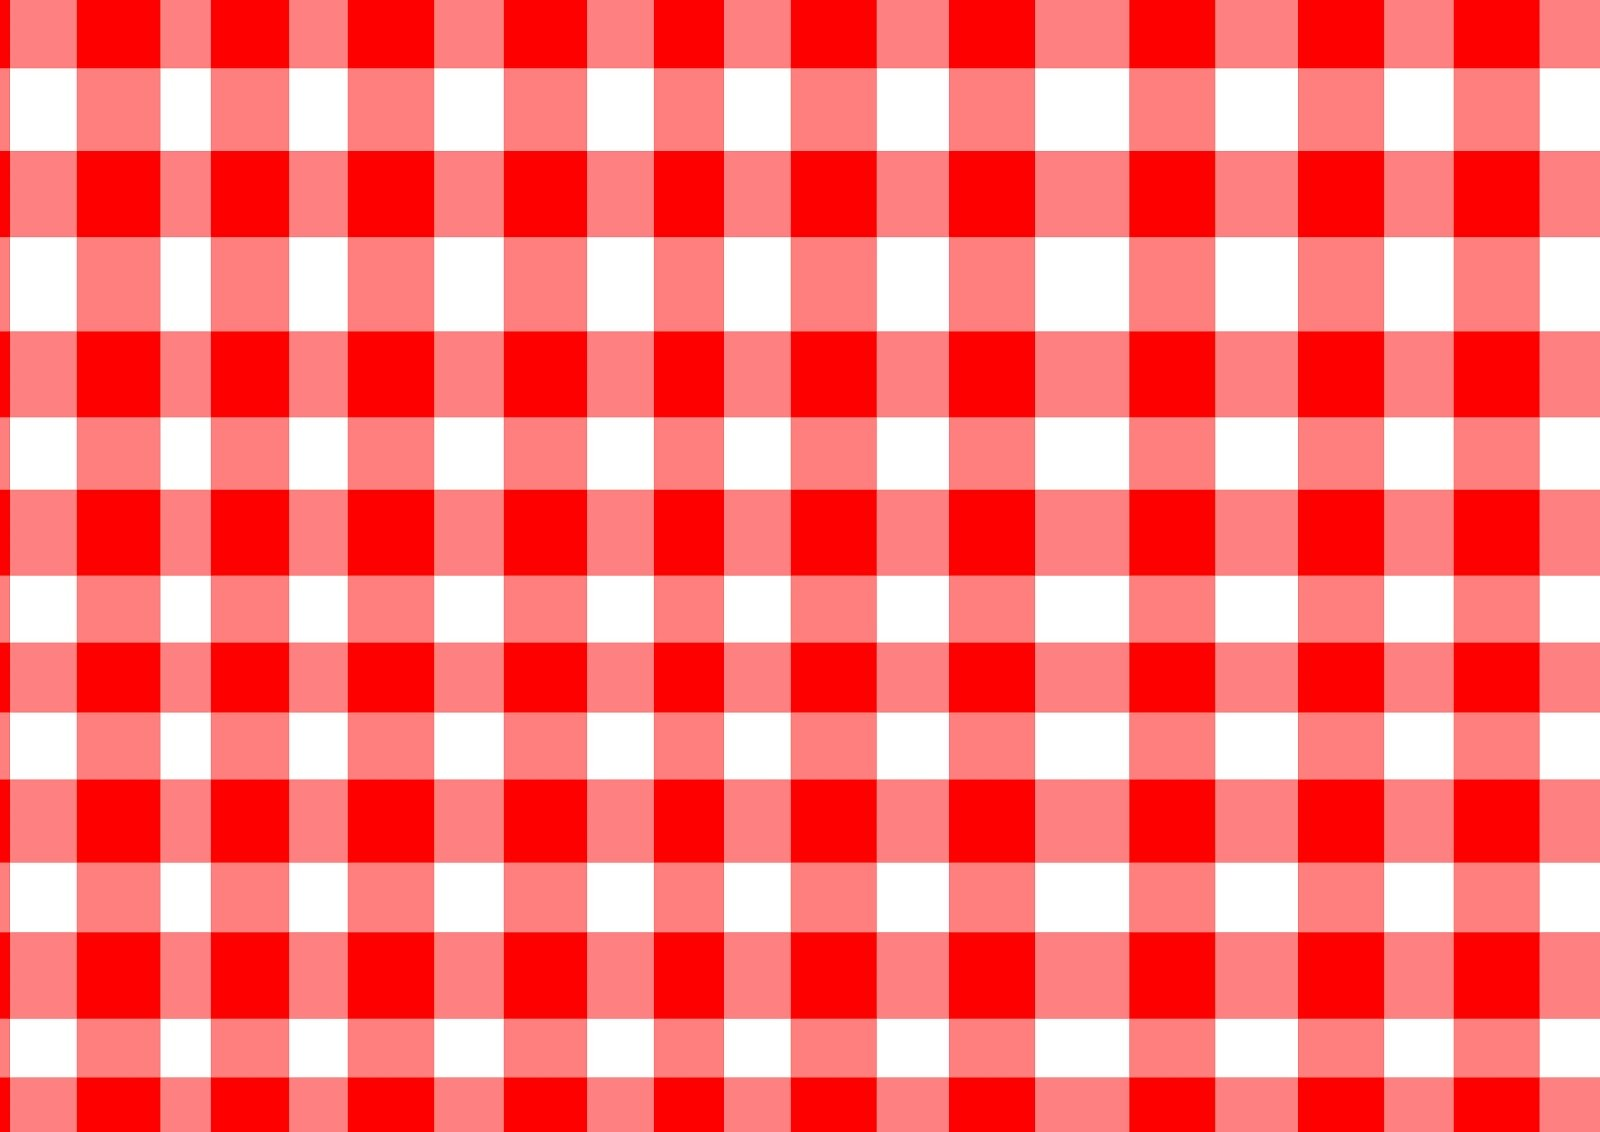 Plaid Curtains. Home. Decor. Curtains & Window Treatments. Plaid Curtains. Showing 40 of results that match your query. Product Title. Country Chic Plaid Gingham Tie Up Shade Window Curtain Treatment - Black. Product - Candy Apple Red Gingham Checkered Plaid Kitchen Tier Curtain Valance. Product Image. Price $ .